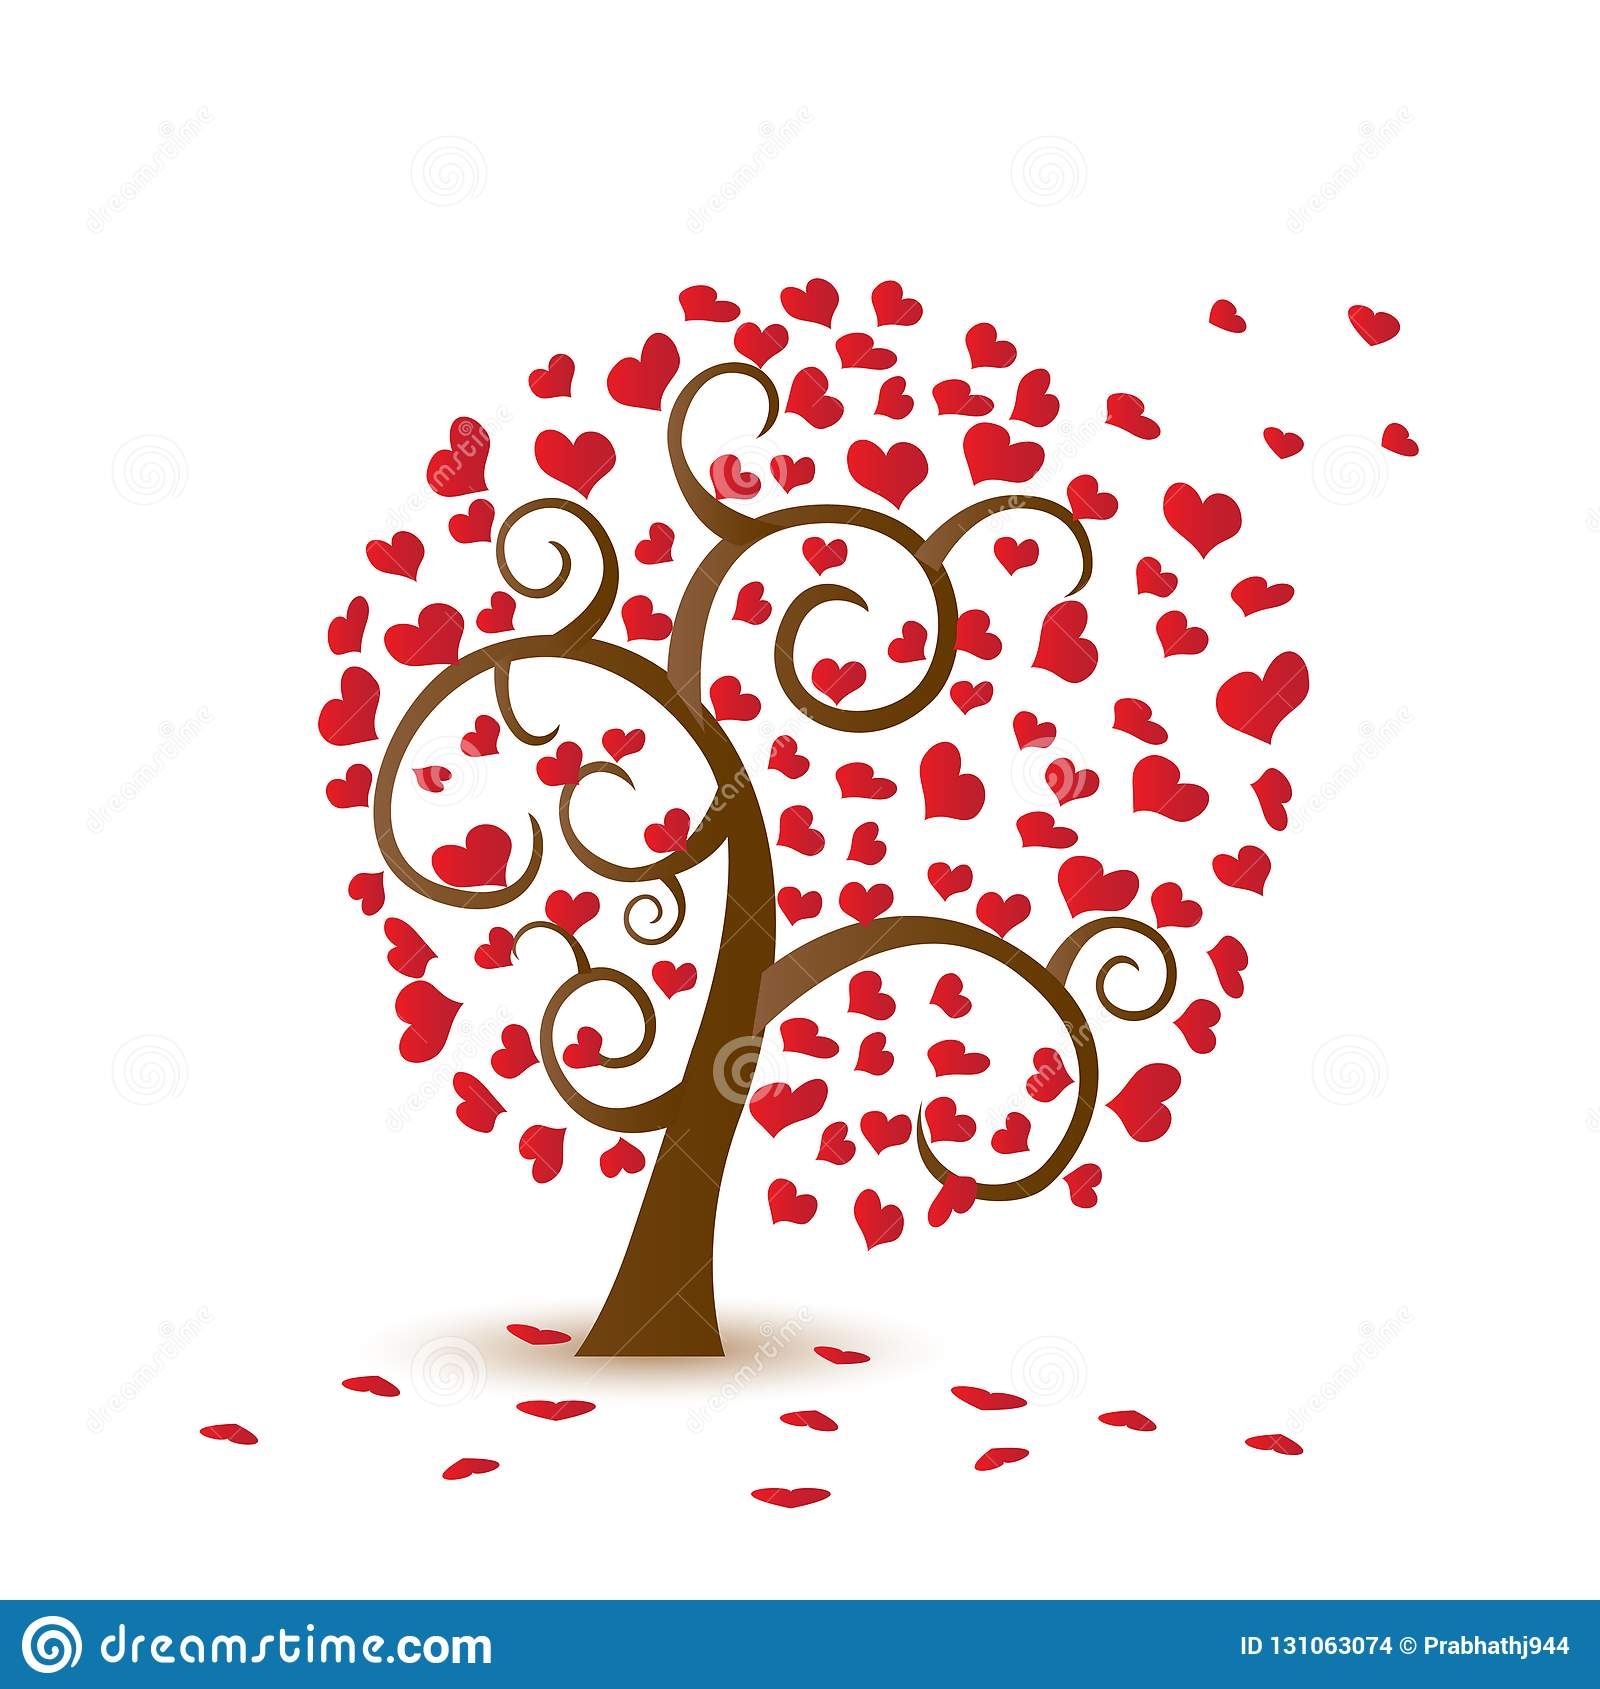 Valentine tree, love, leaf from hearts. Falling